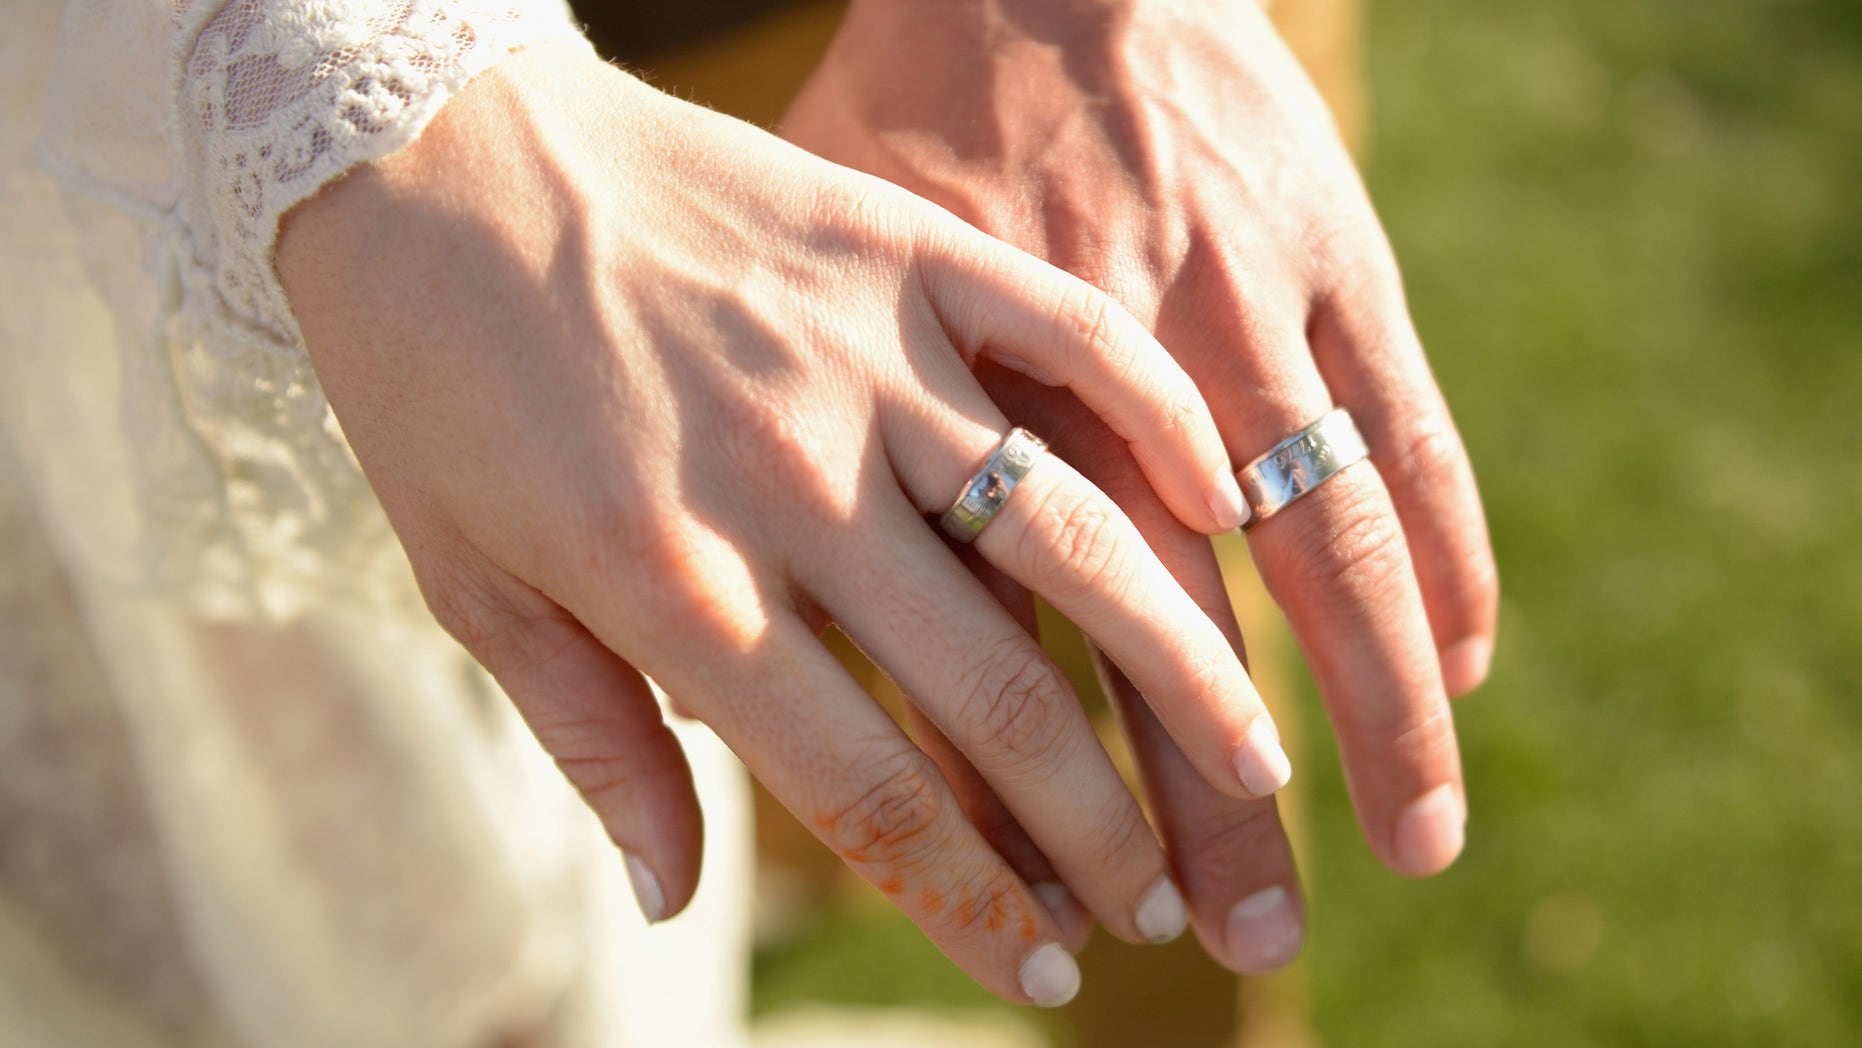 The hands of bride and groom are seen in Indio, California, April 11, 2015.